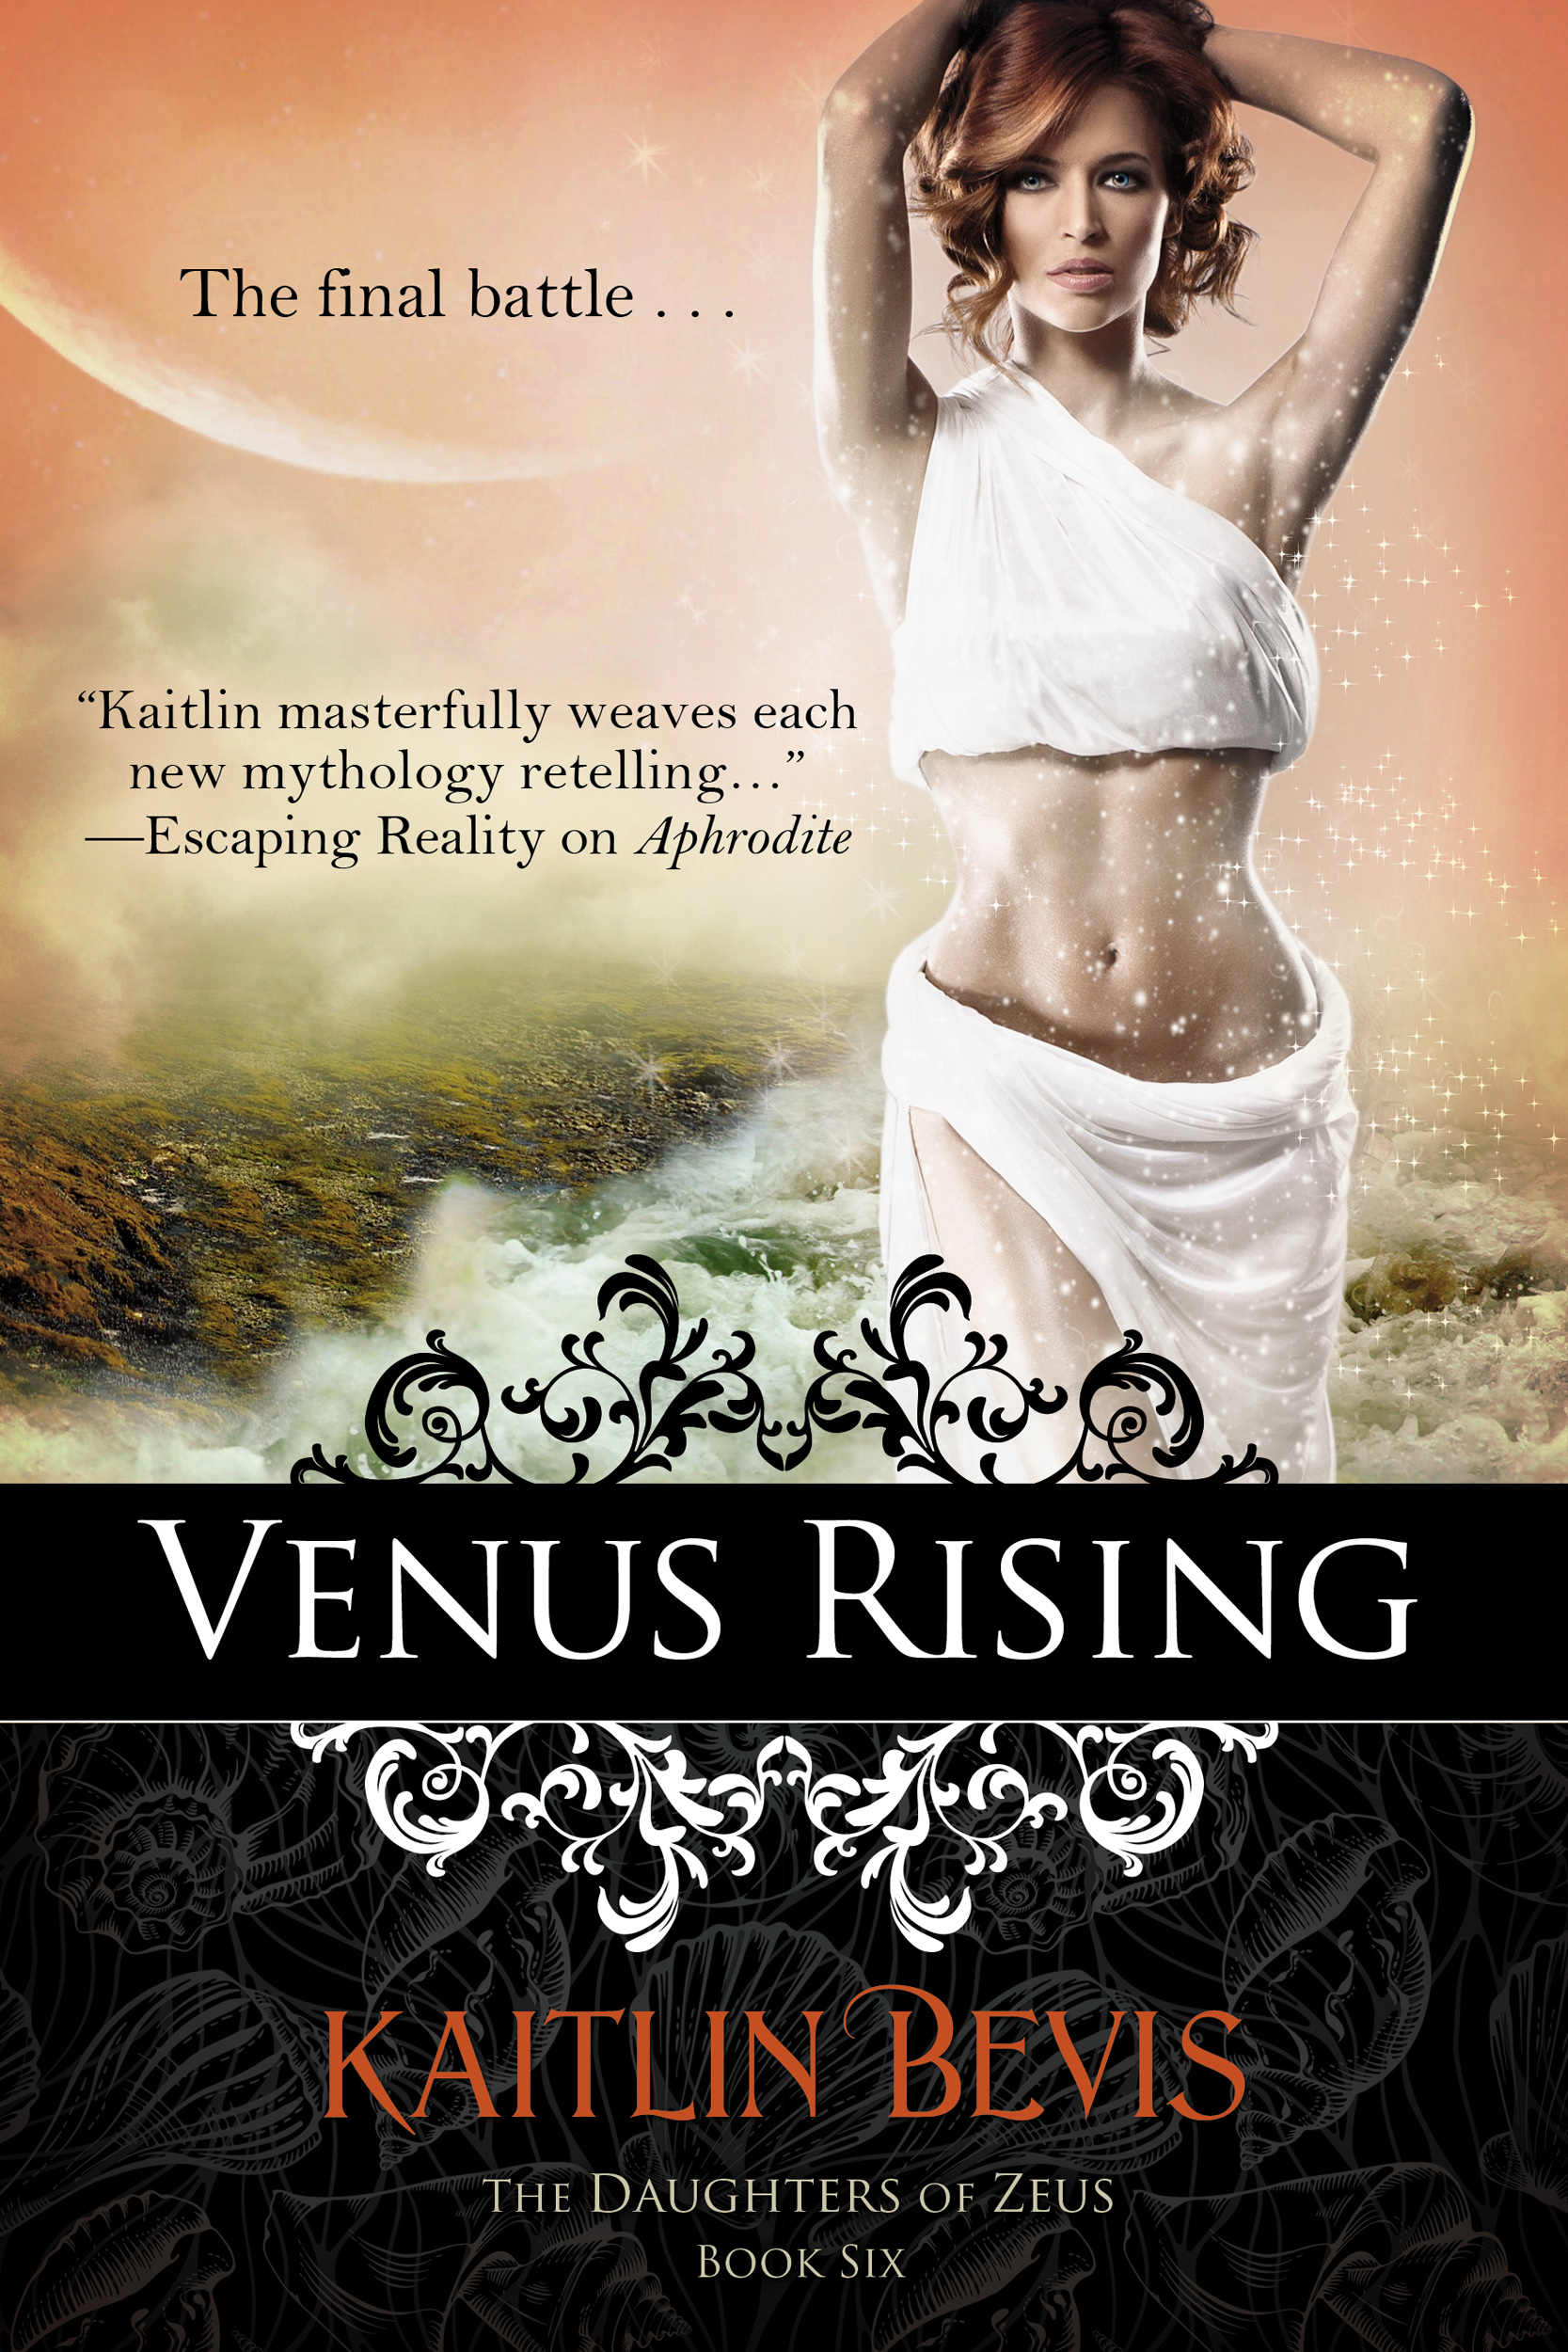 kaitlin bevis retelling classic greek myths with a modern twist